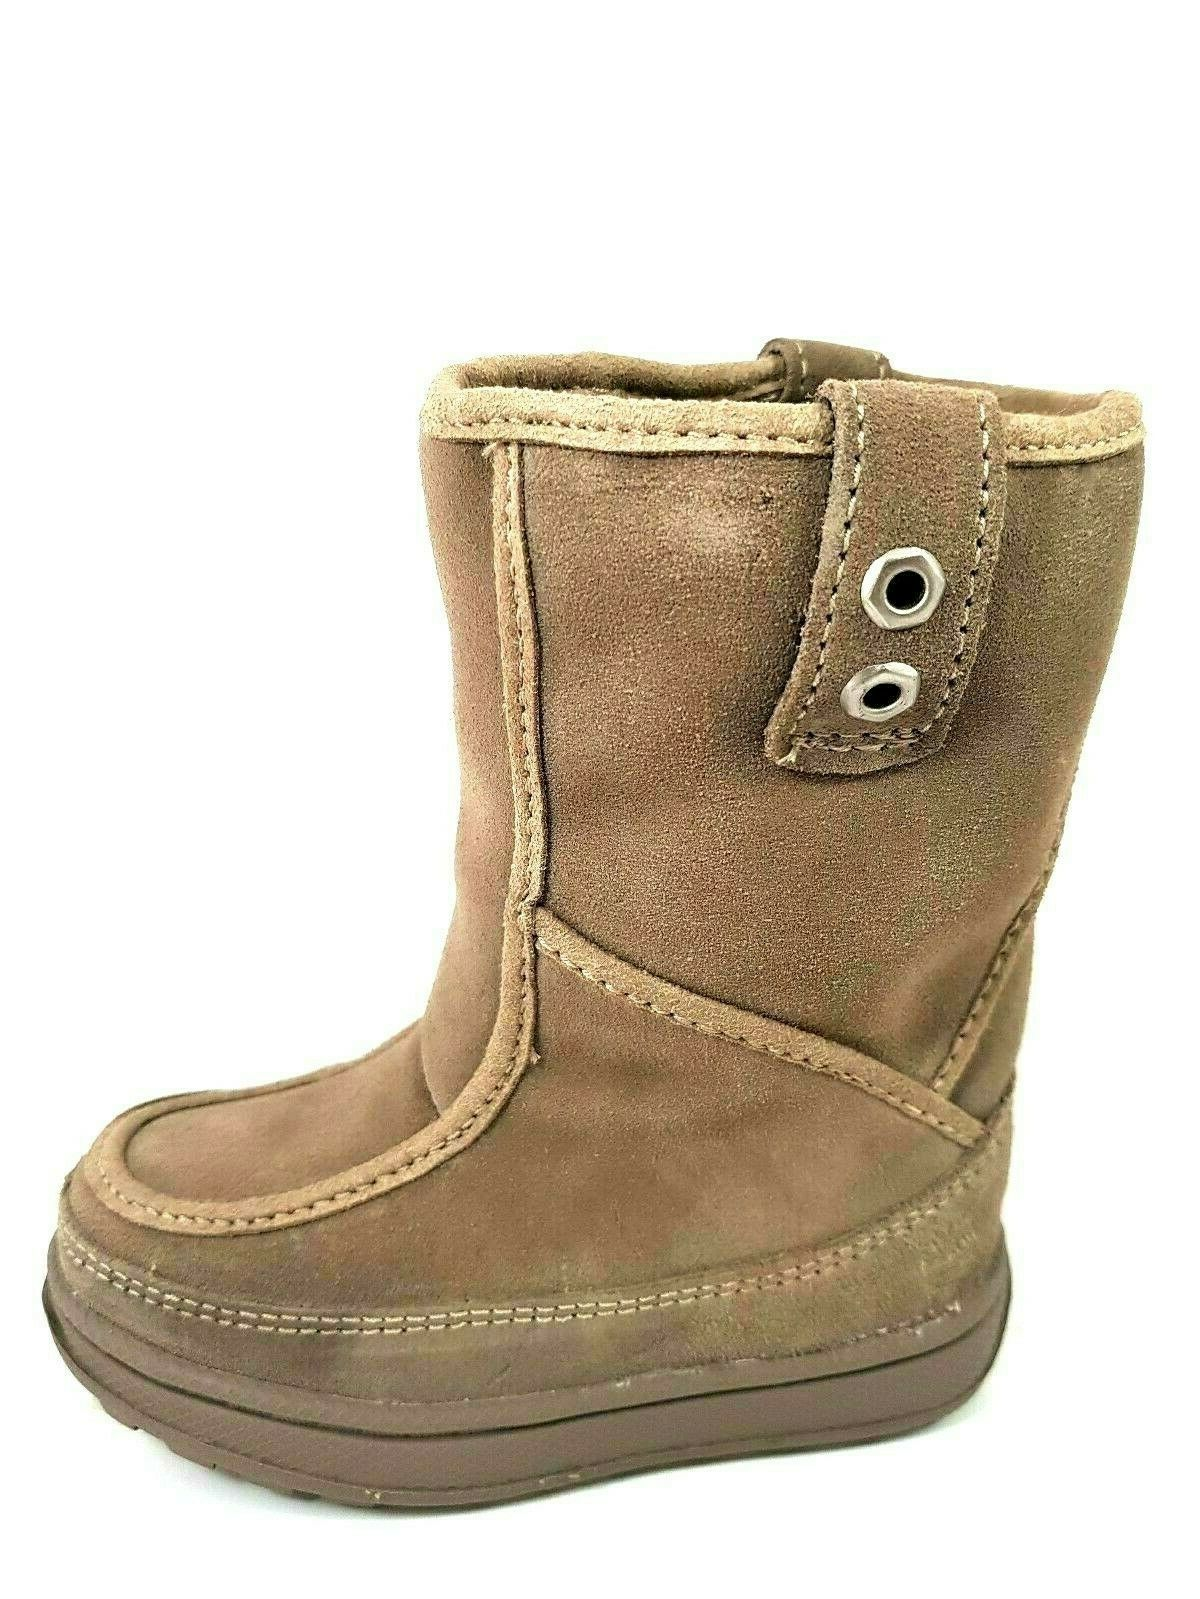 Timberland Girls Boots Winter 36776 m/M Mukluk Jewel Leather Tones Beige Sz 3